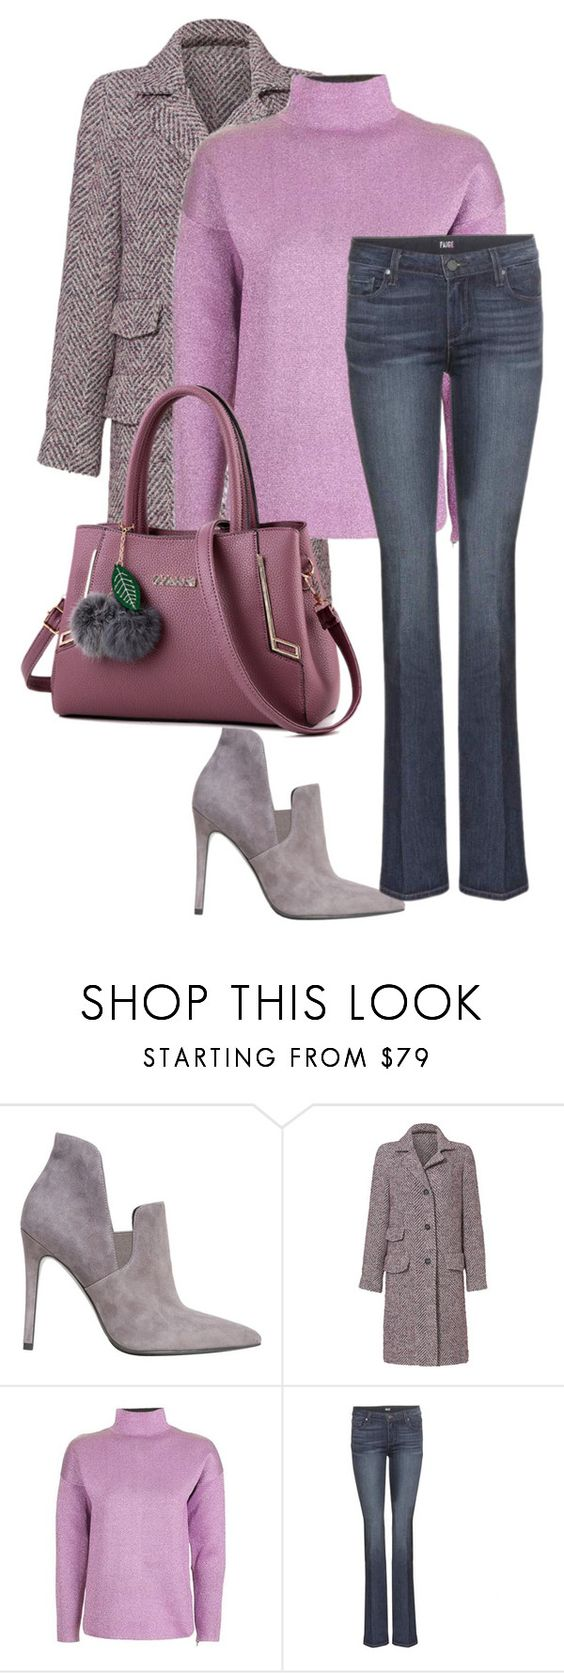 """Untitled 18"" by havlova-blanka on Polyvore featuring Kendall + Kylie, Rebecca Taylor, Topshop and Paige Denim"